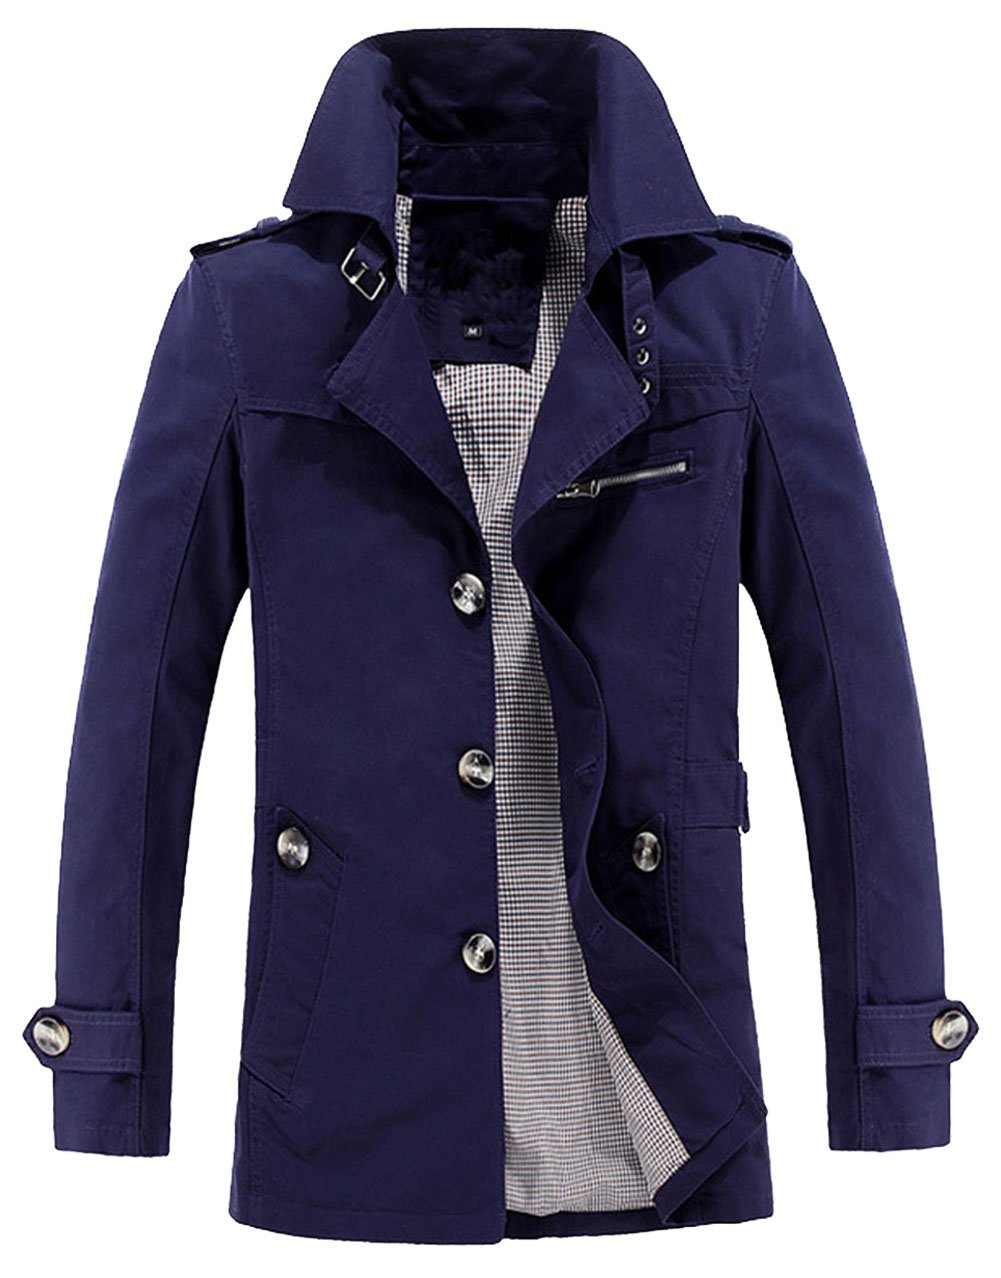 OUYE Men's Casual Slim Fit Outwear Trench Coat 4X-Large Navy Blue